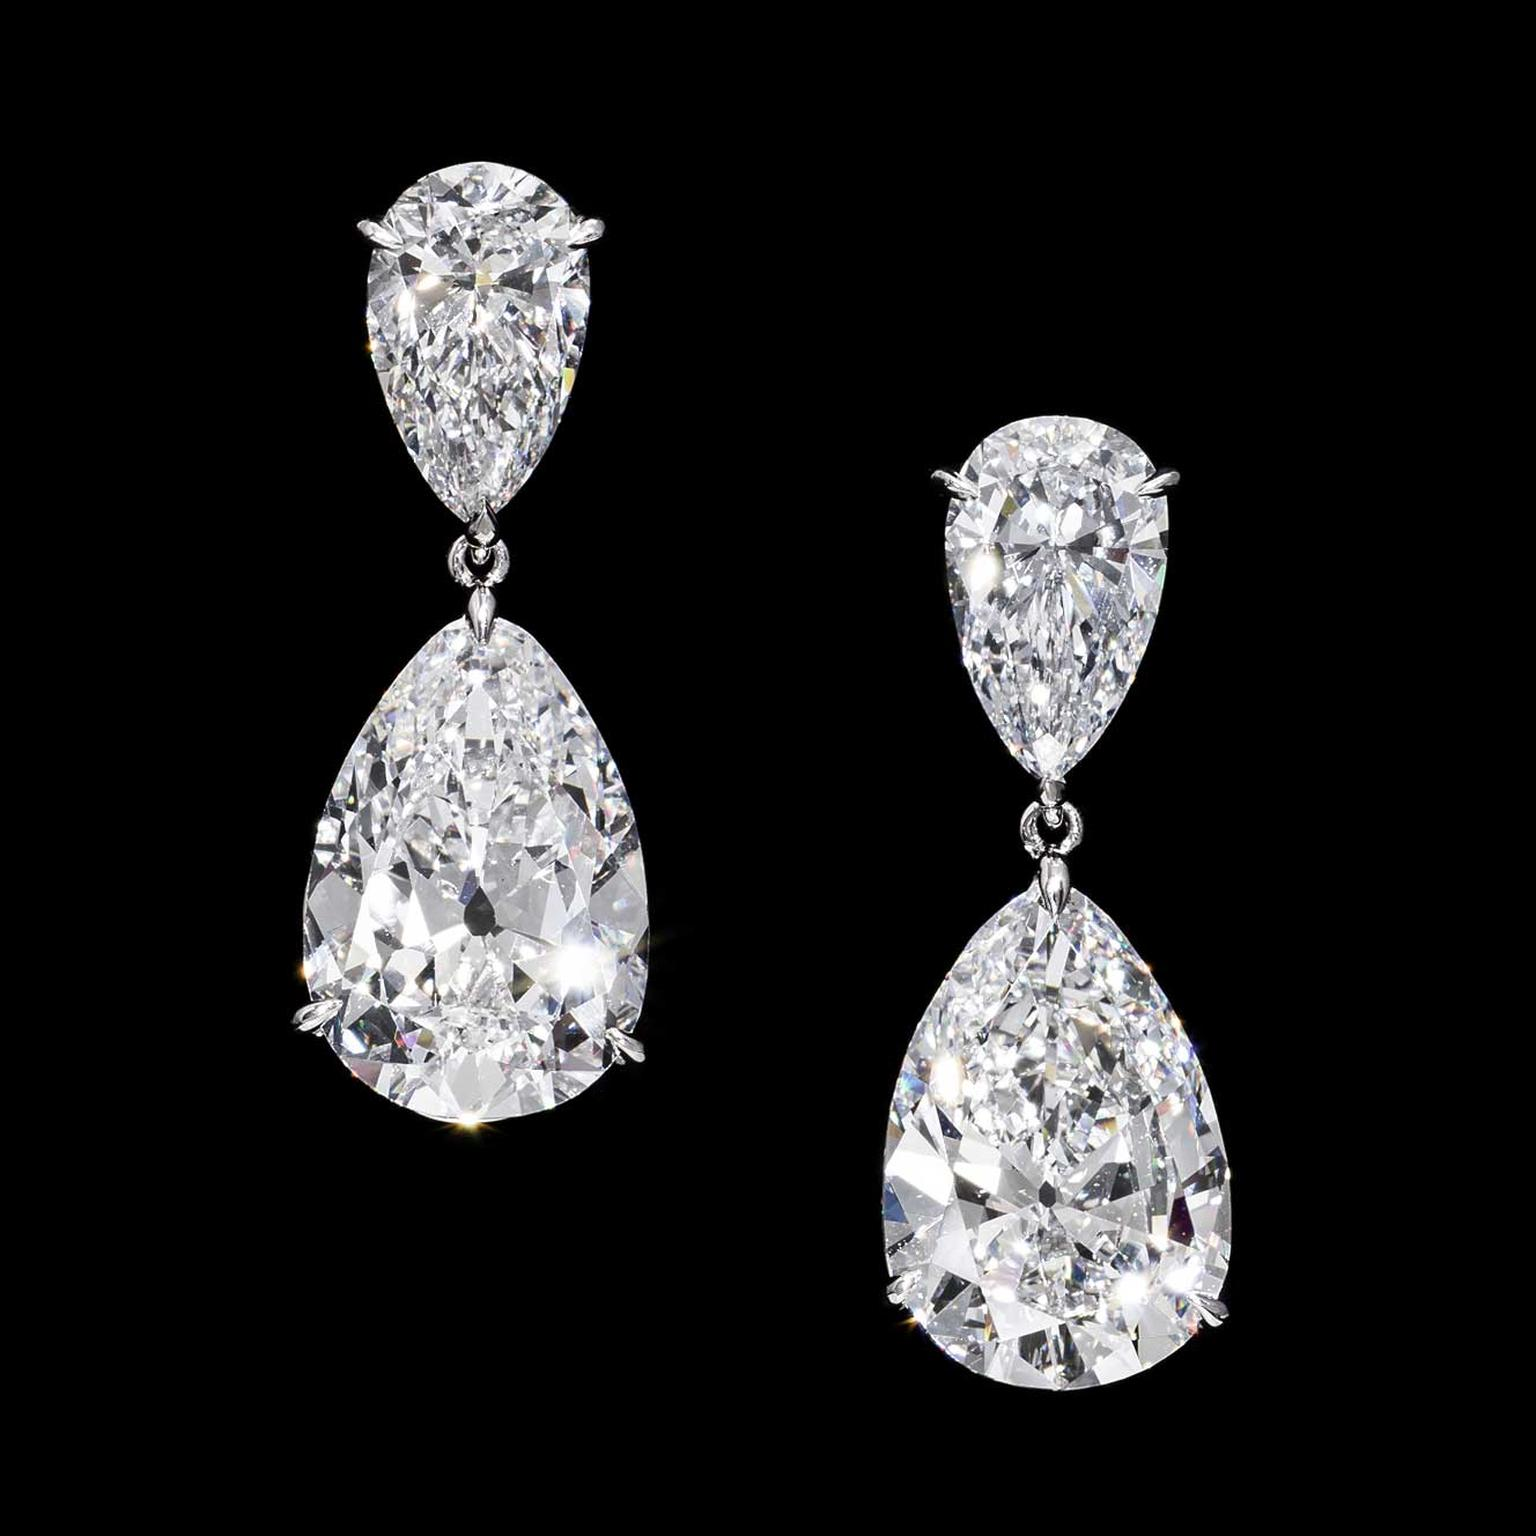 Jahan pear-shape diamond earrings